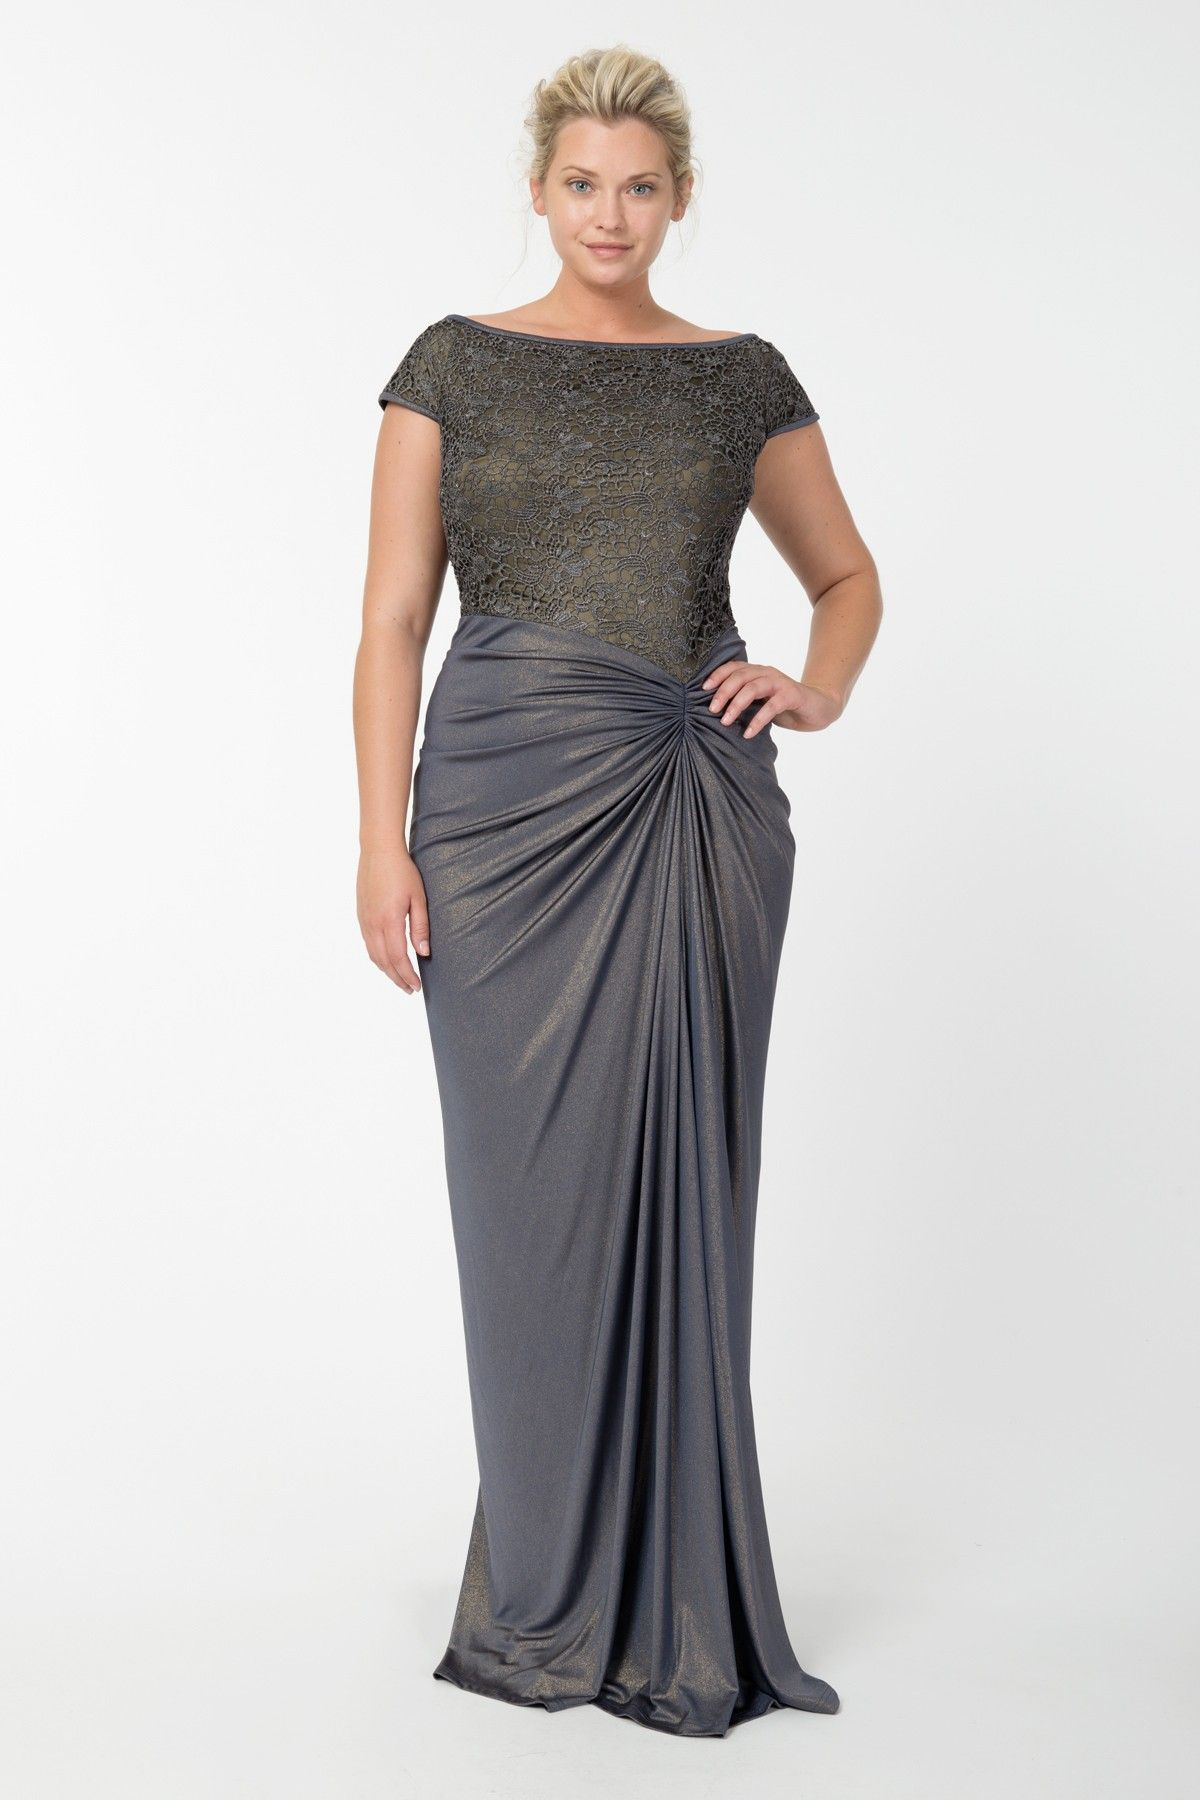 ac6955e1b76 20 Plus Size Evening Dresses to Look Like Queen